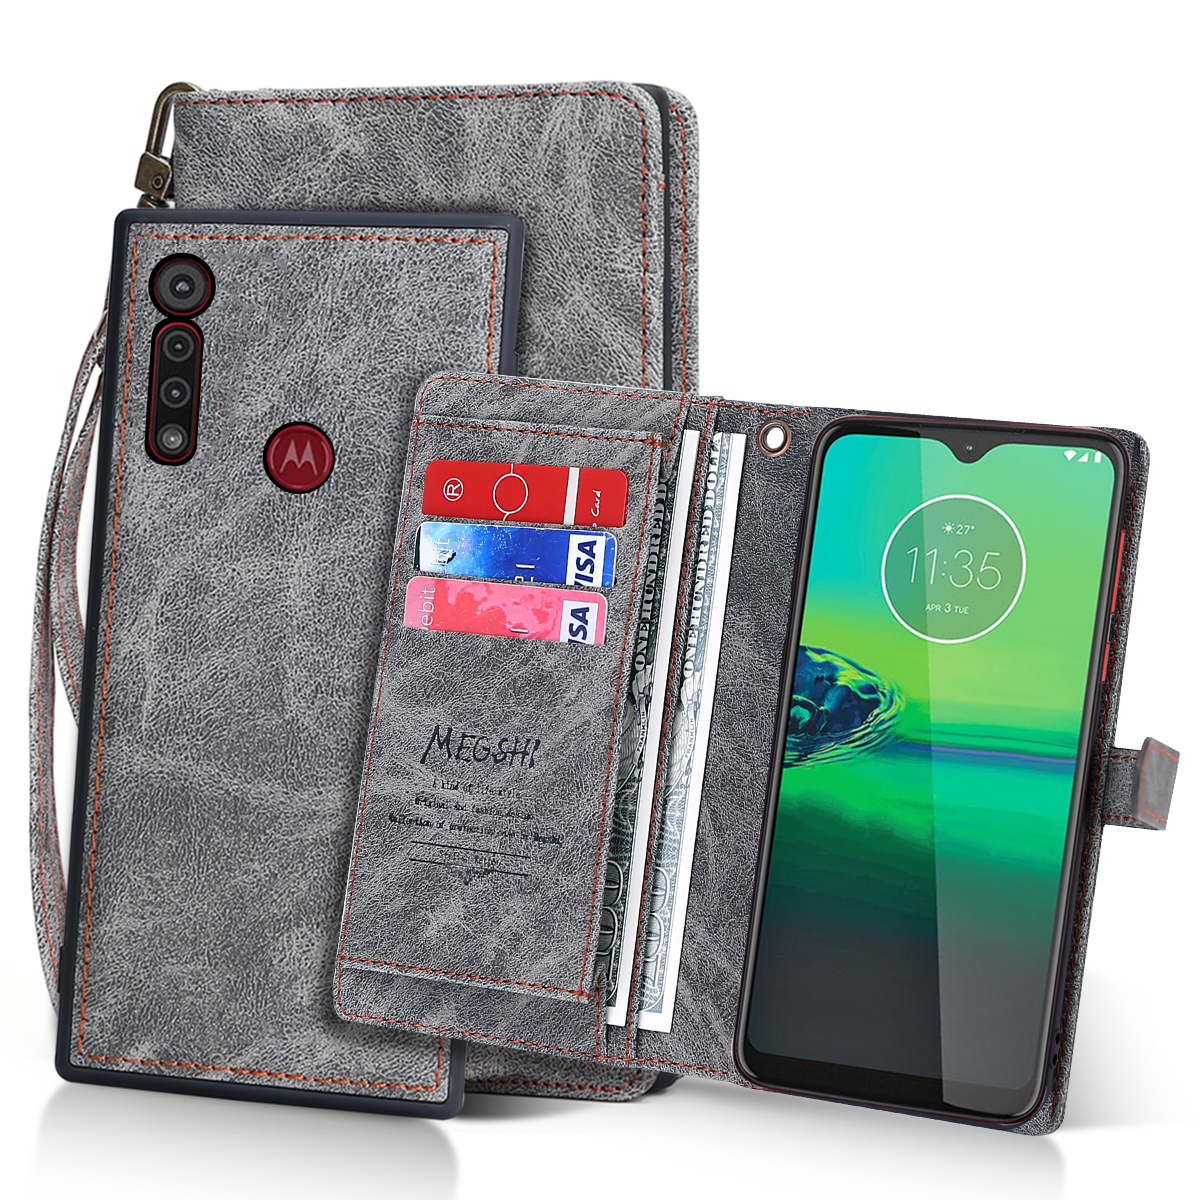 Card Case For Motorola Moto G8 Plus PU Leather Case Detachable Magnetic Flip Stand Wallet Cover Moto G8 Play Case Shockproof